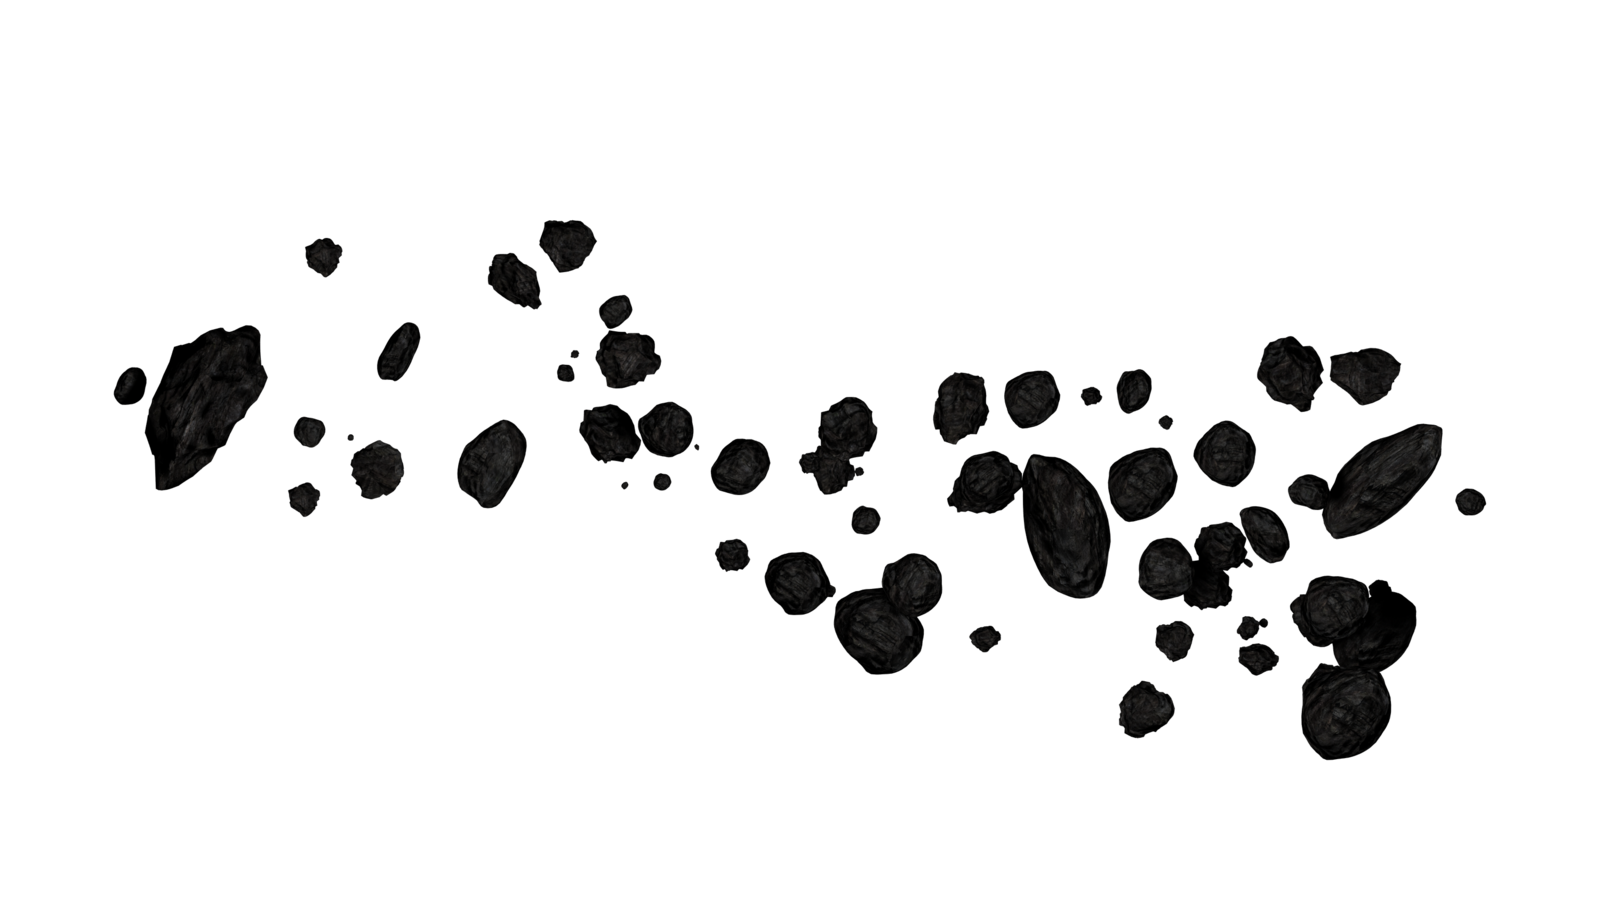 Meteor clipart black and white. Asteroids asteroid belt clip